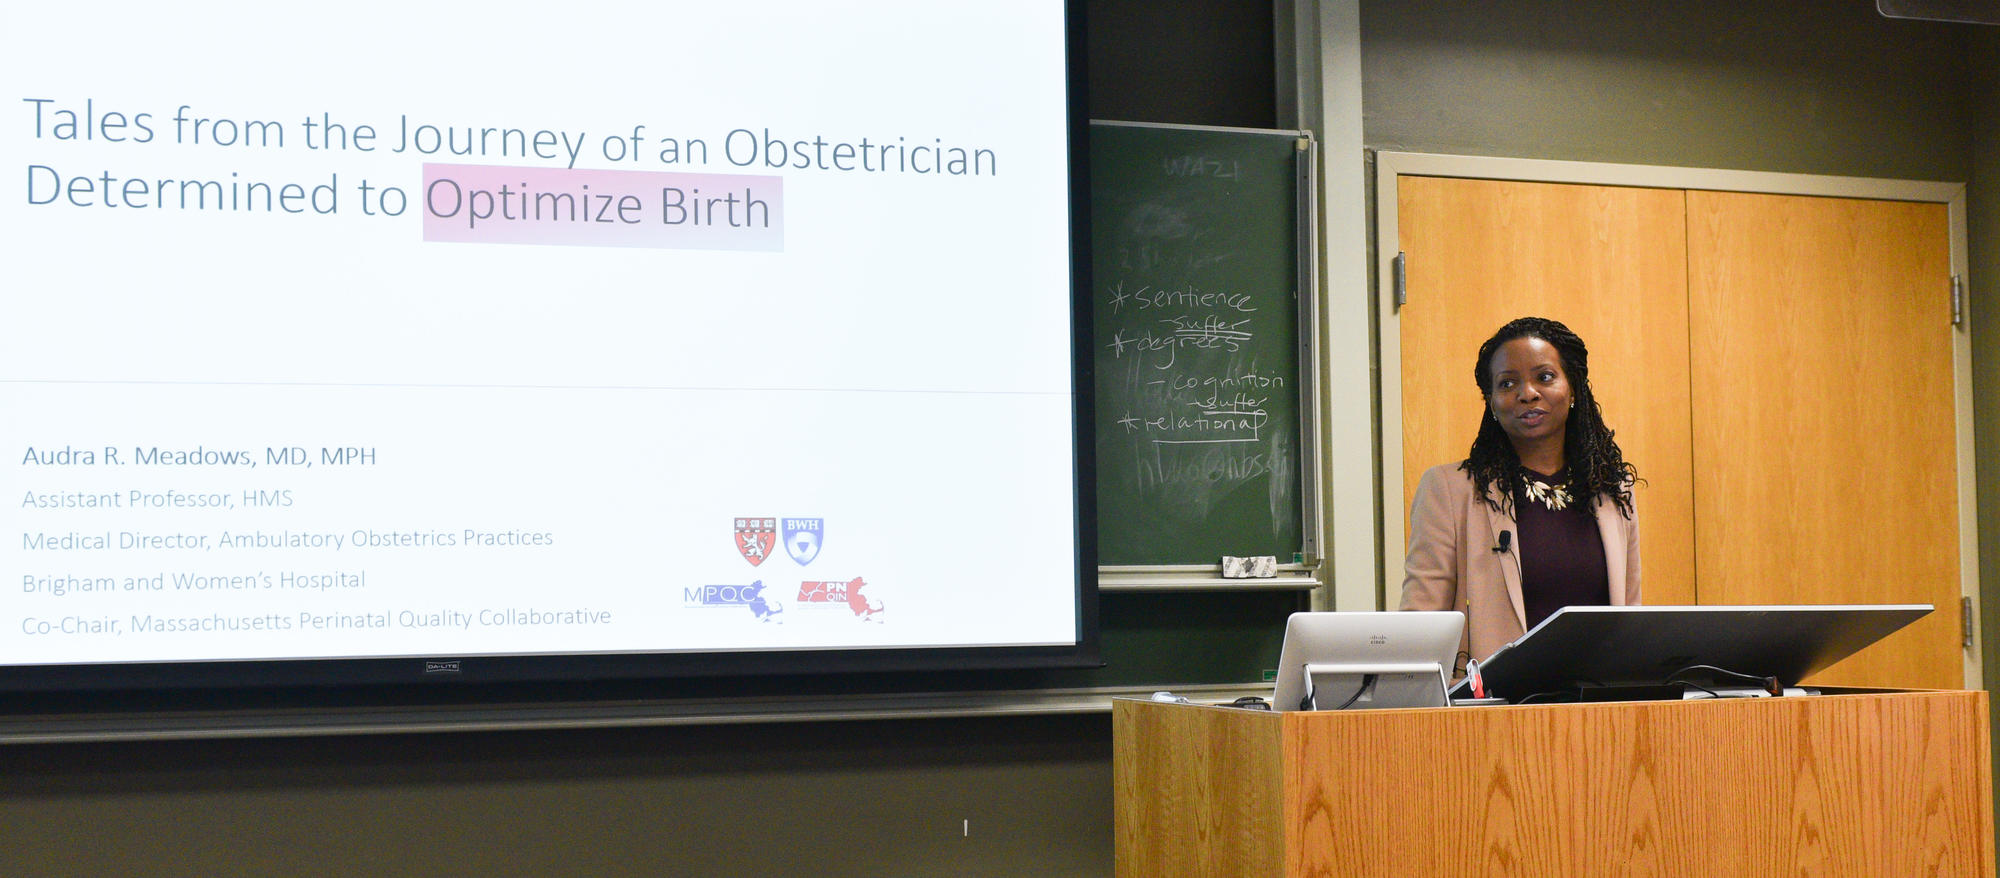 Dr. Audra Meadows at podium presenting Amos lecture. Image: Richard Groleau